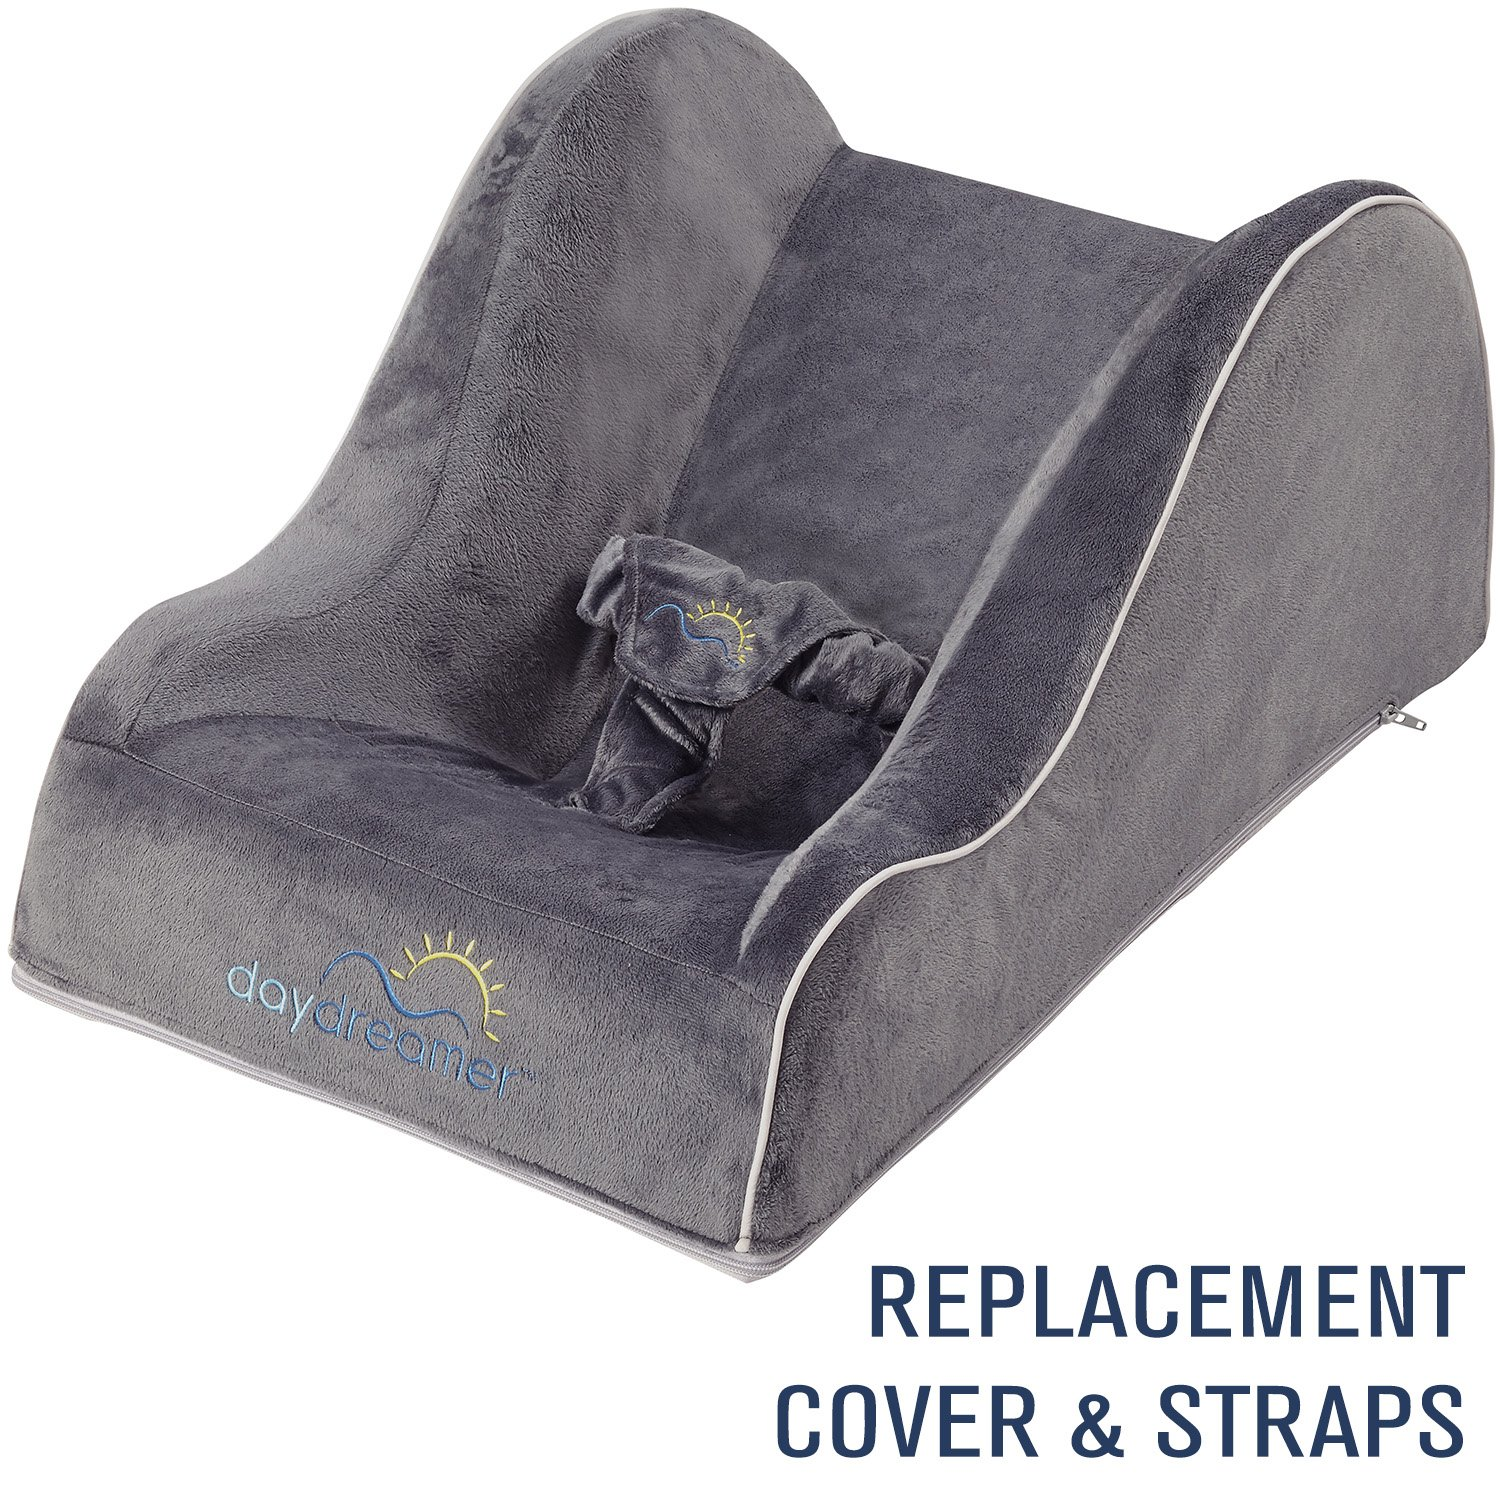 DayDreamer Sleeper Baby Lounger [REPLACEMENT COVER] & Harness Straps | Extra Backup Cover (Dark Grey) Keezio